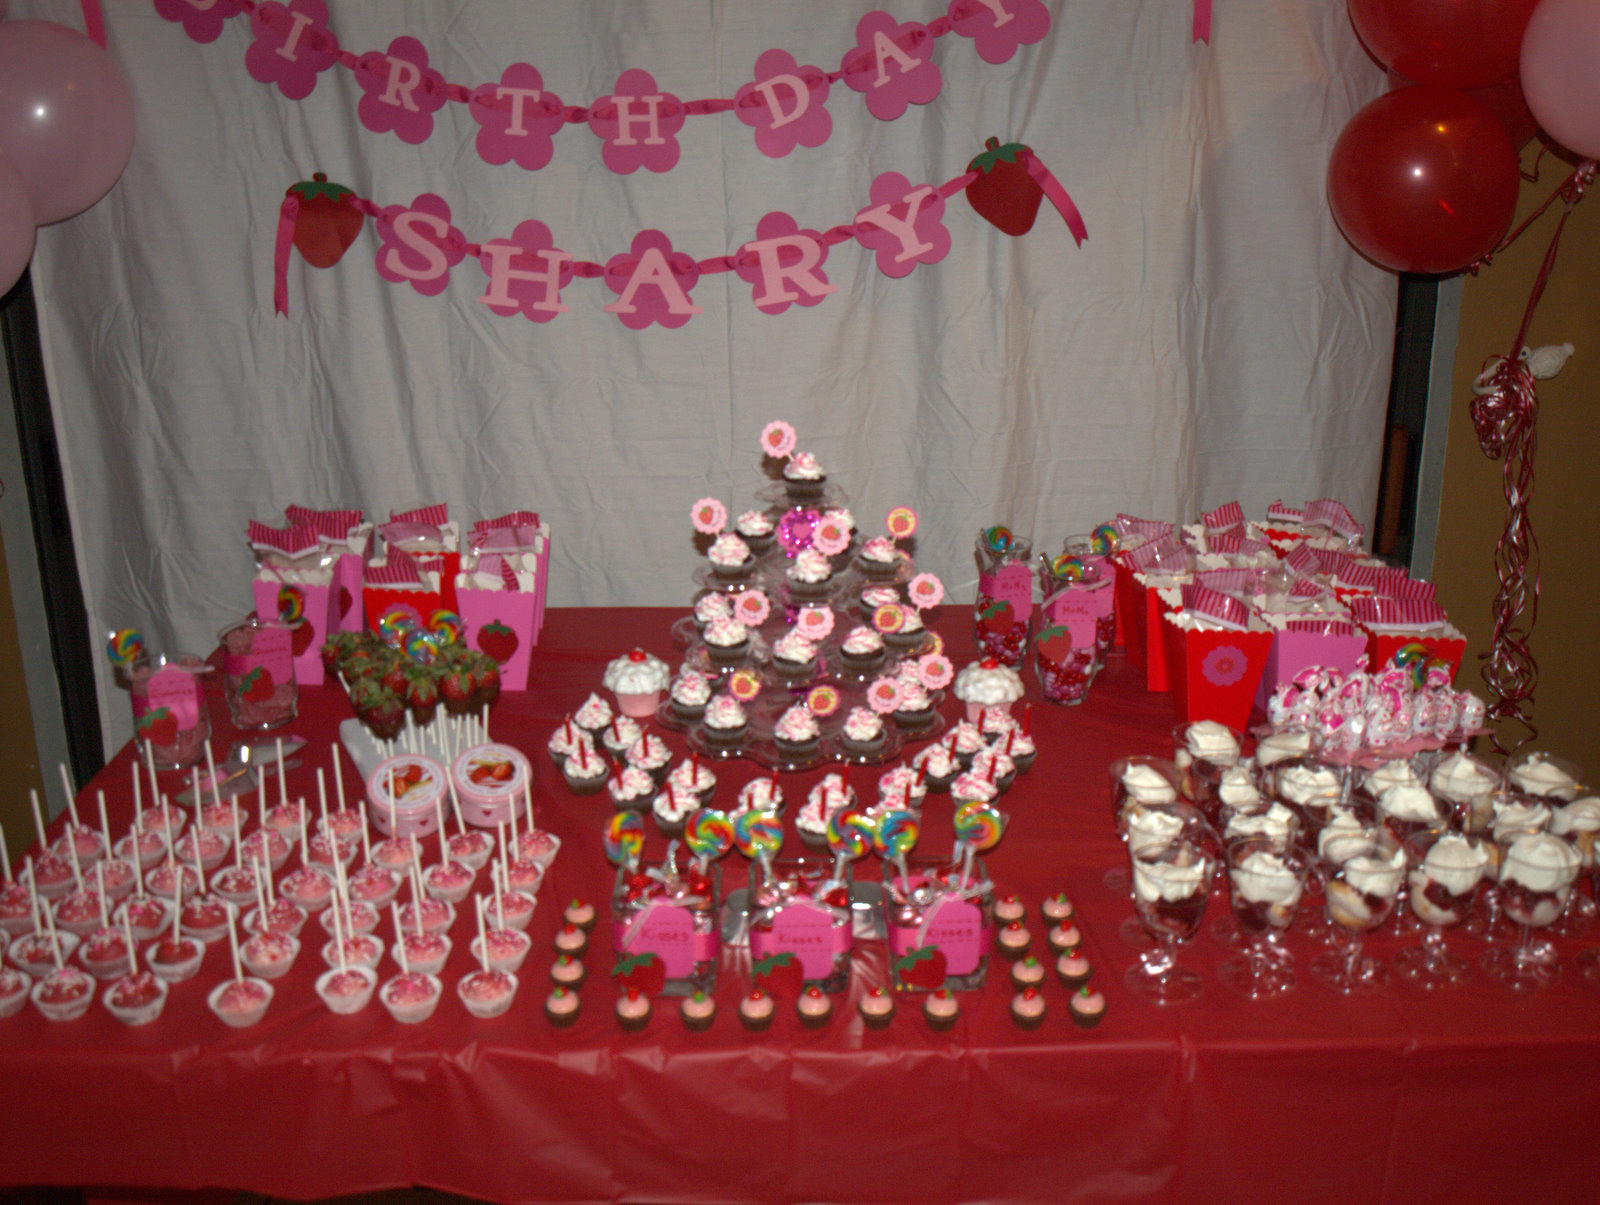 18th birthday party decorations party favors ideas for 18th birthday party decoration